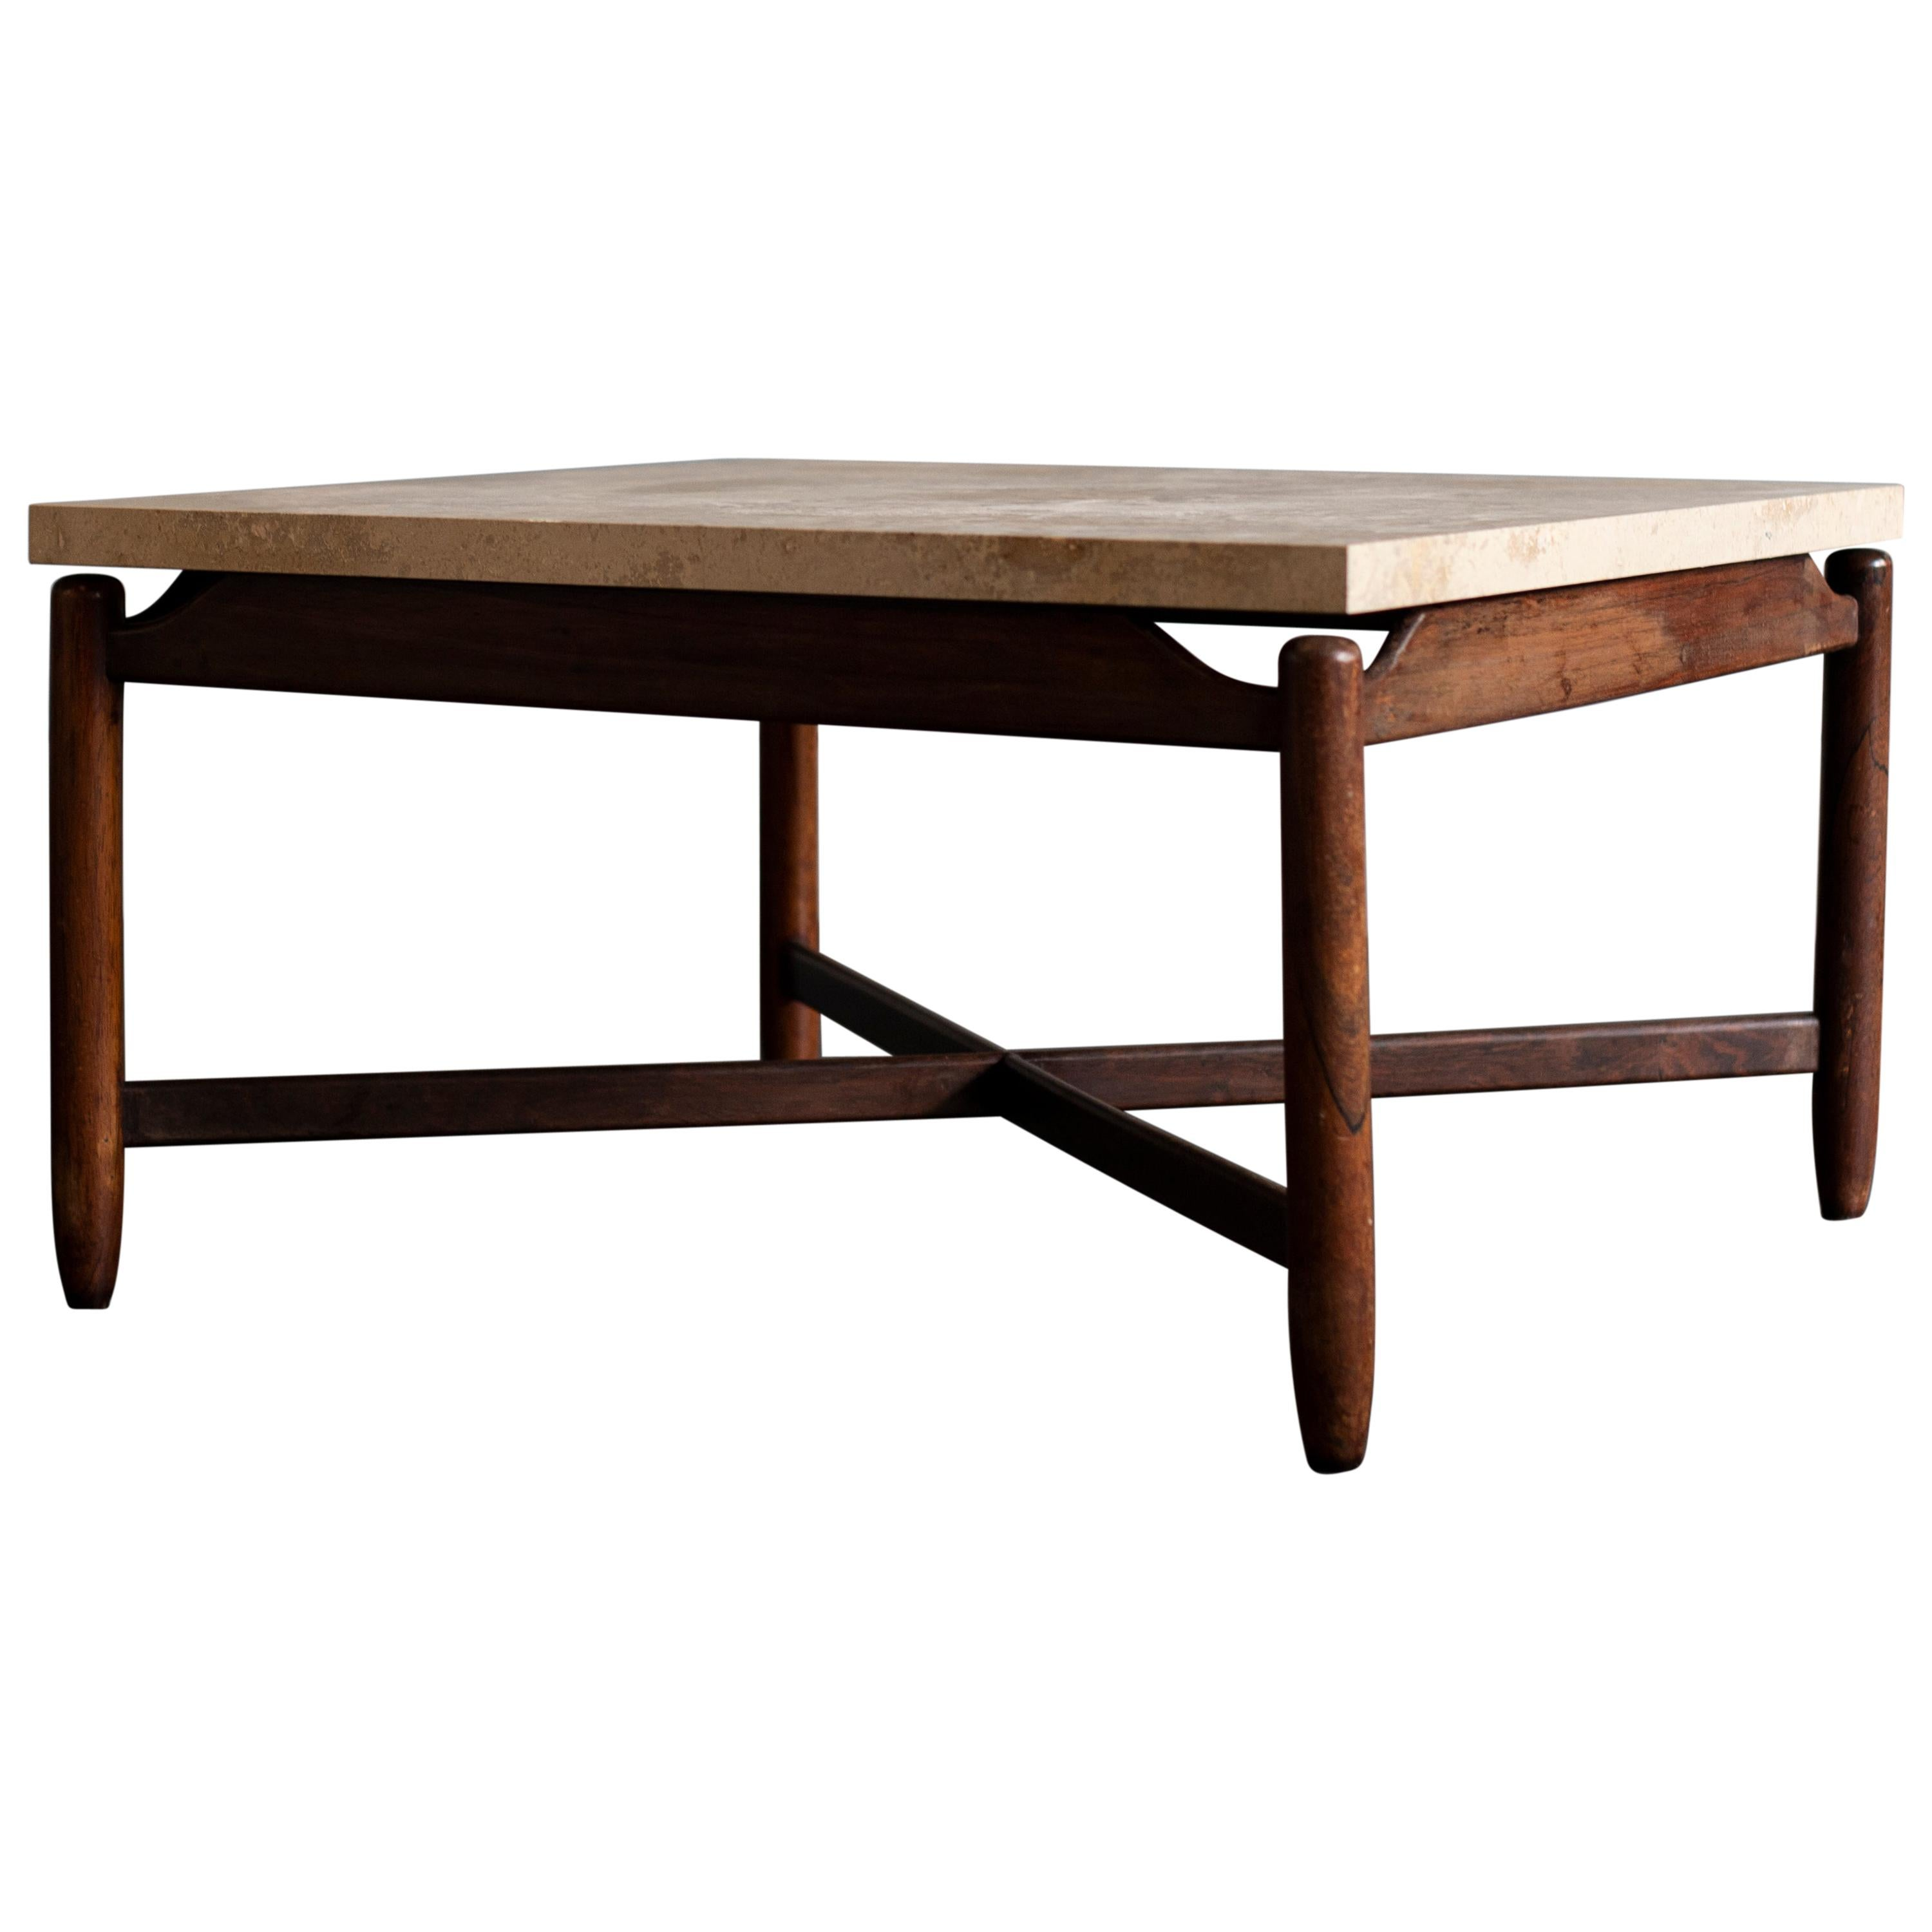 Sergio Rodrigues Coffee Table, 1950s, Brazil